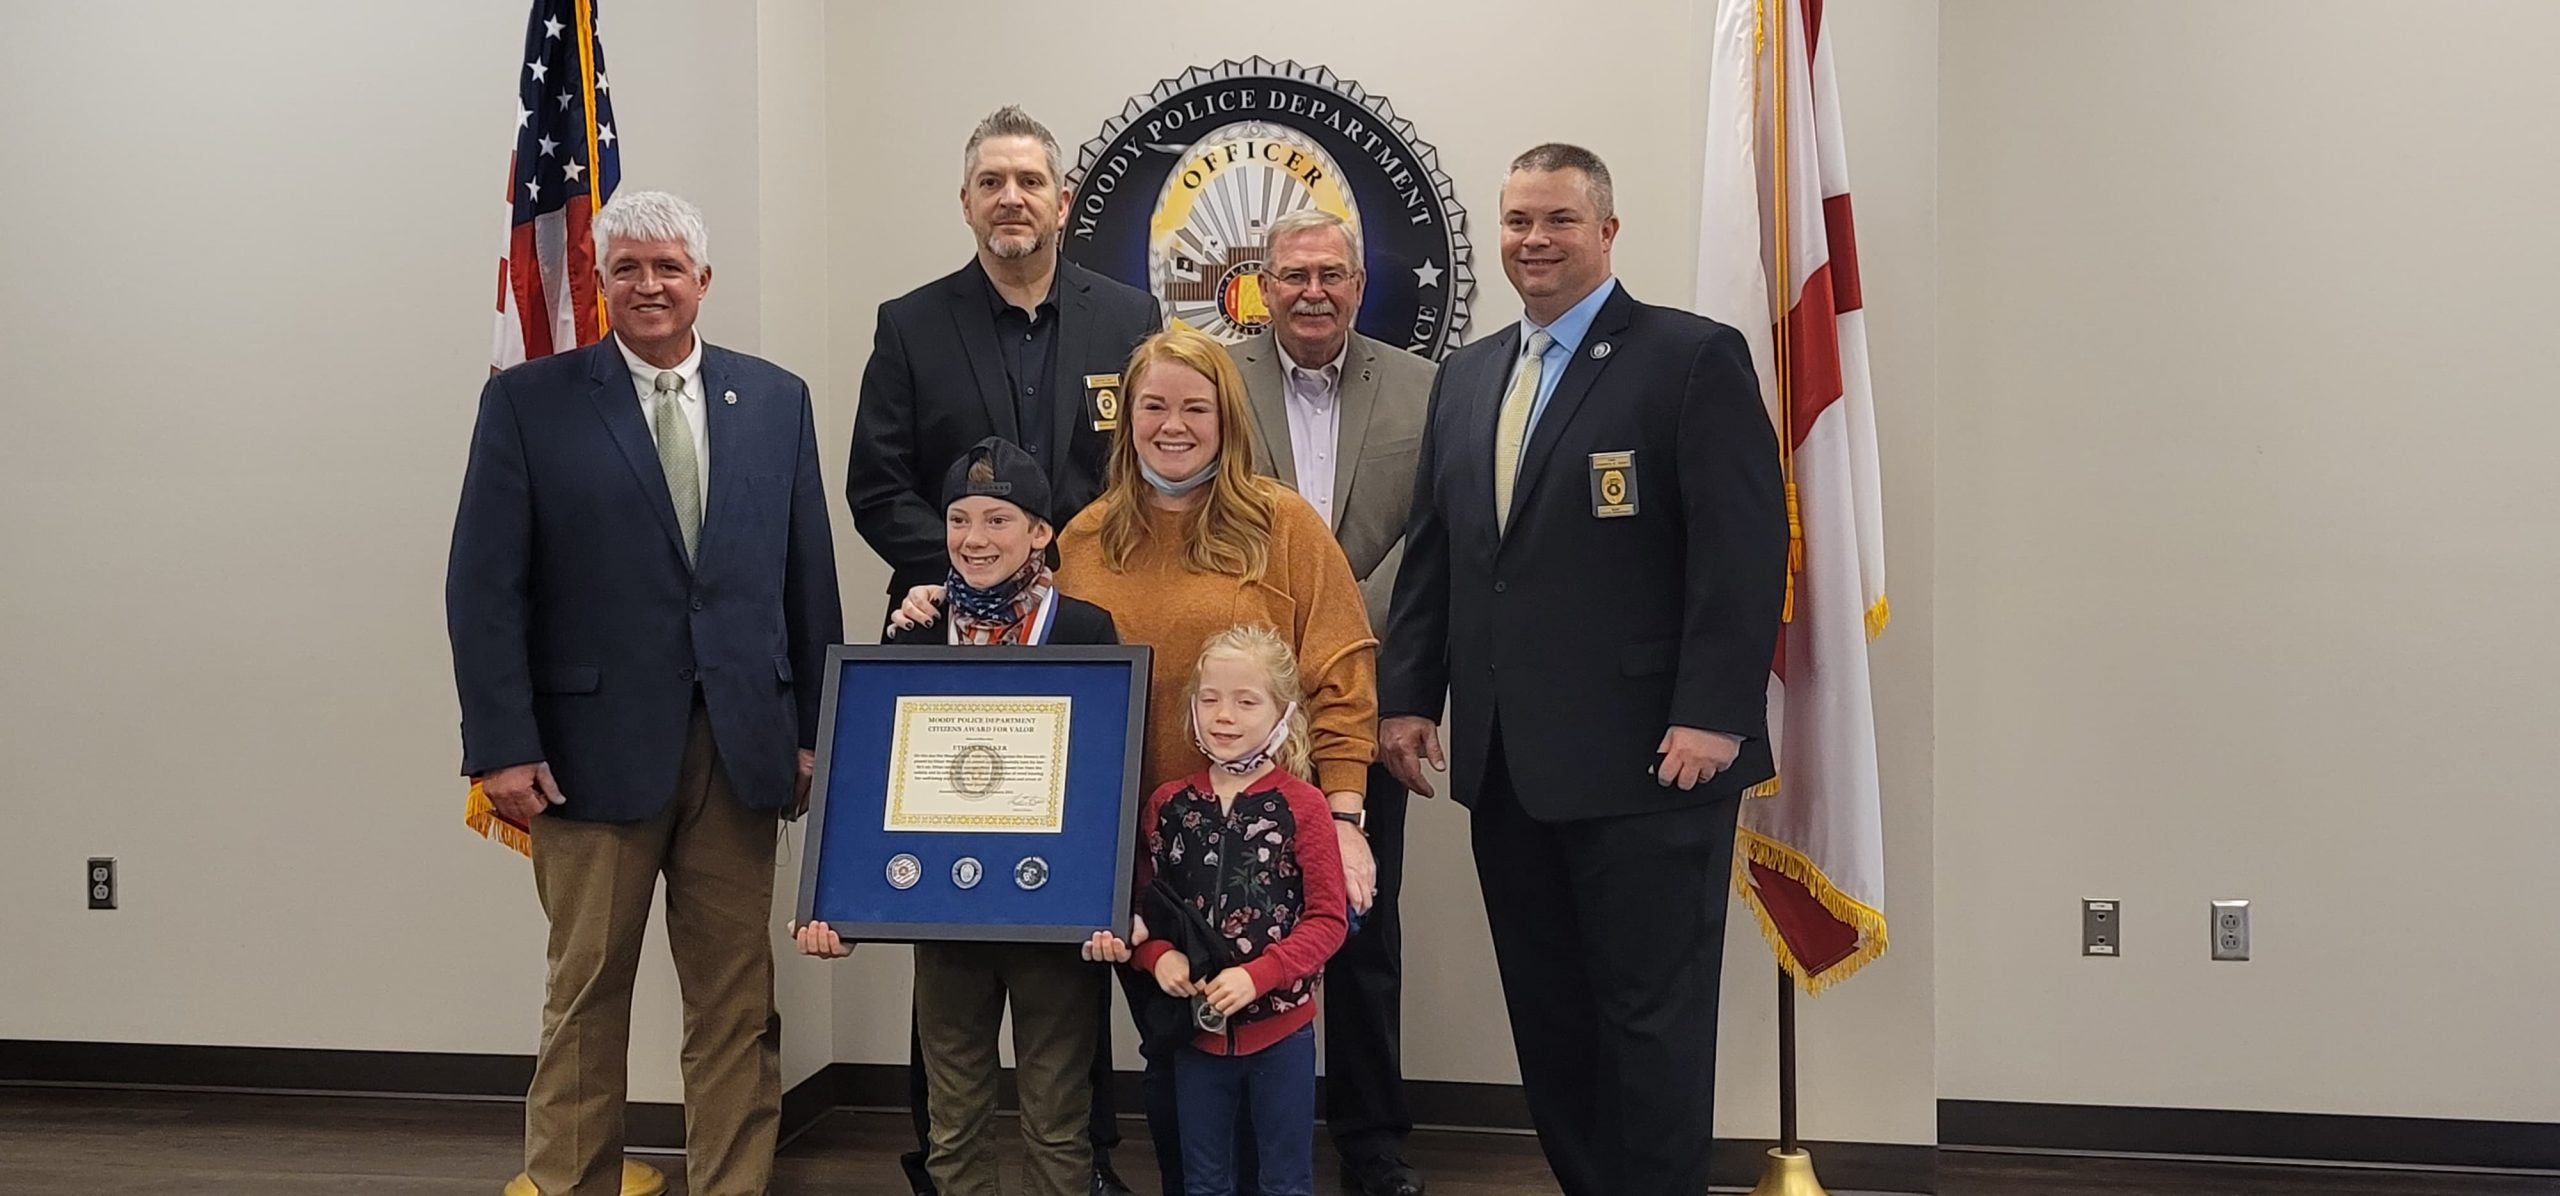 VIDEO: Young boy who saved 5-year-old sister honored in Moody